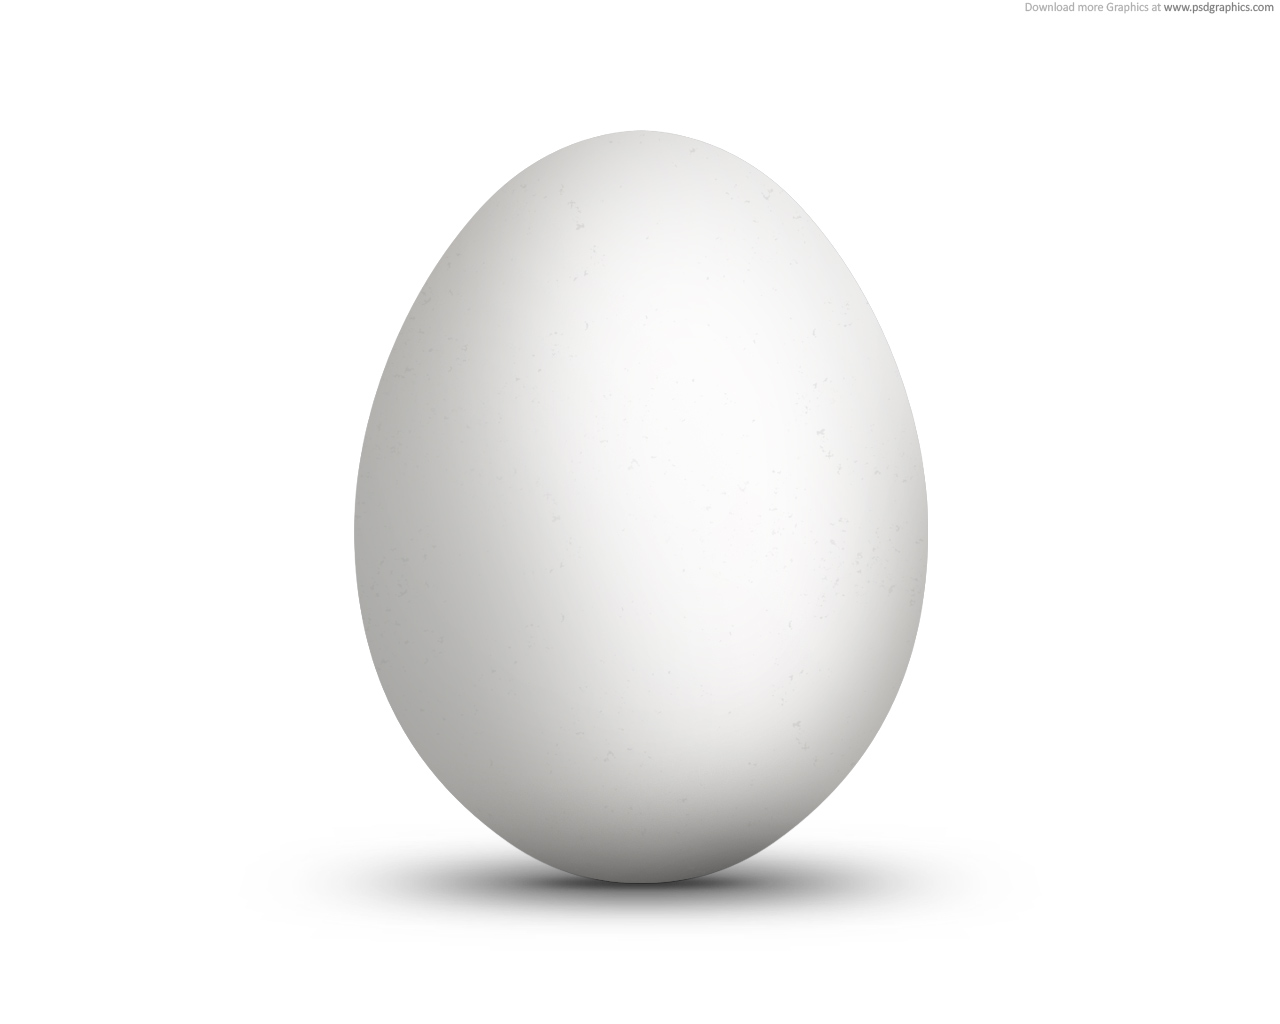 White - Egg HD PNG